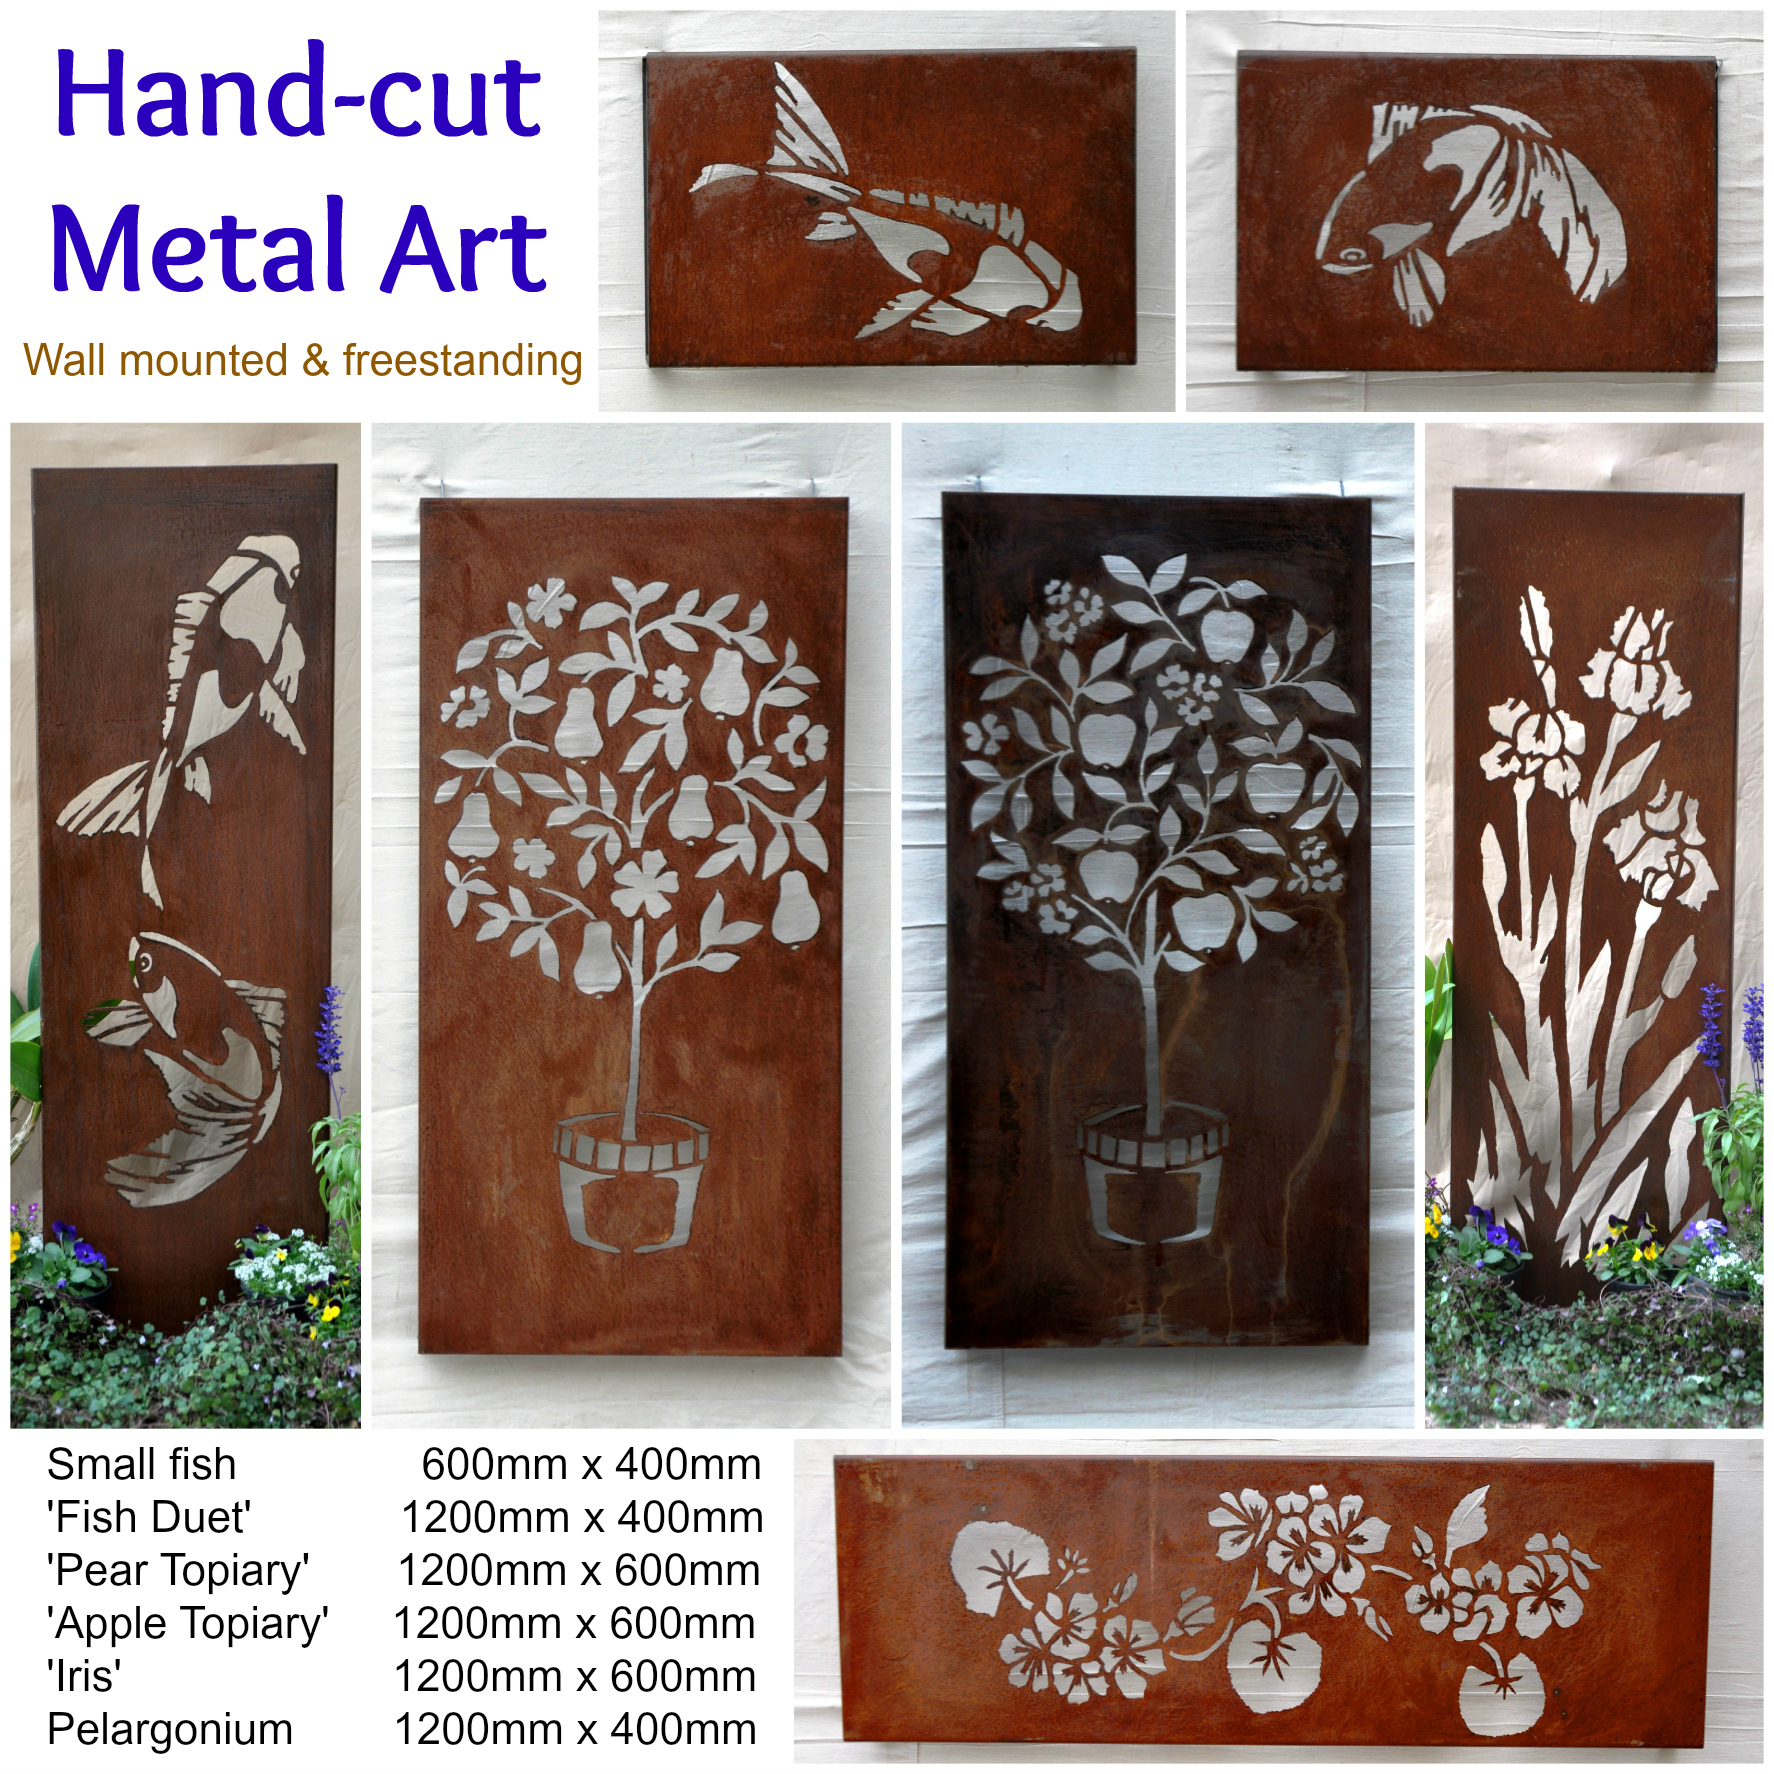 Australian Metal Artwork Garden Art Metal Wall Art